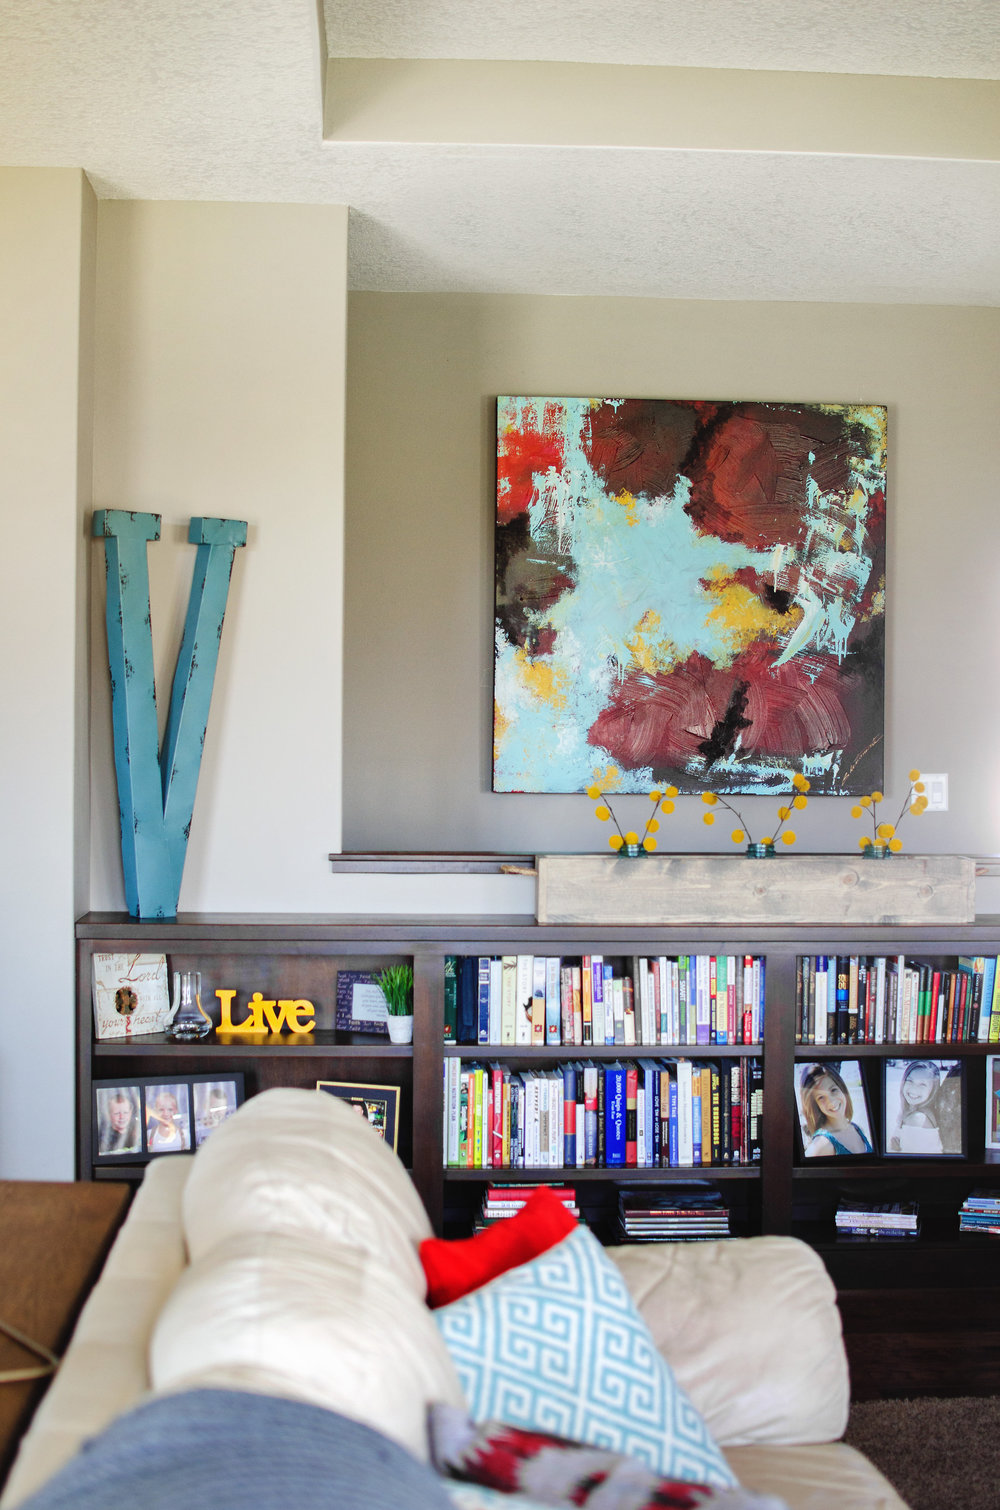 Abstract painting and over-sized monogram over a bookshelf. | hprallandco.com